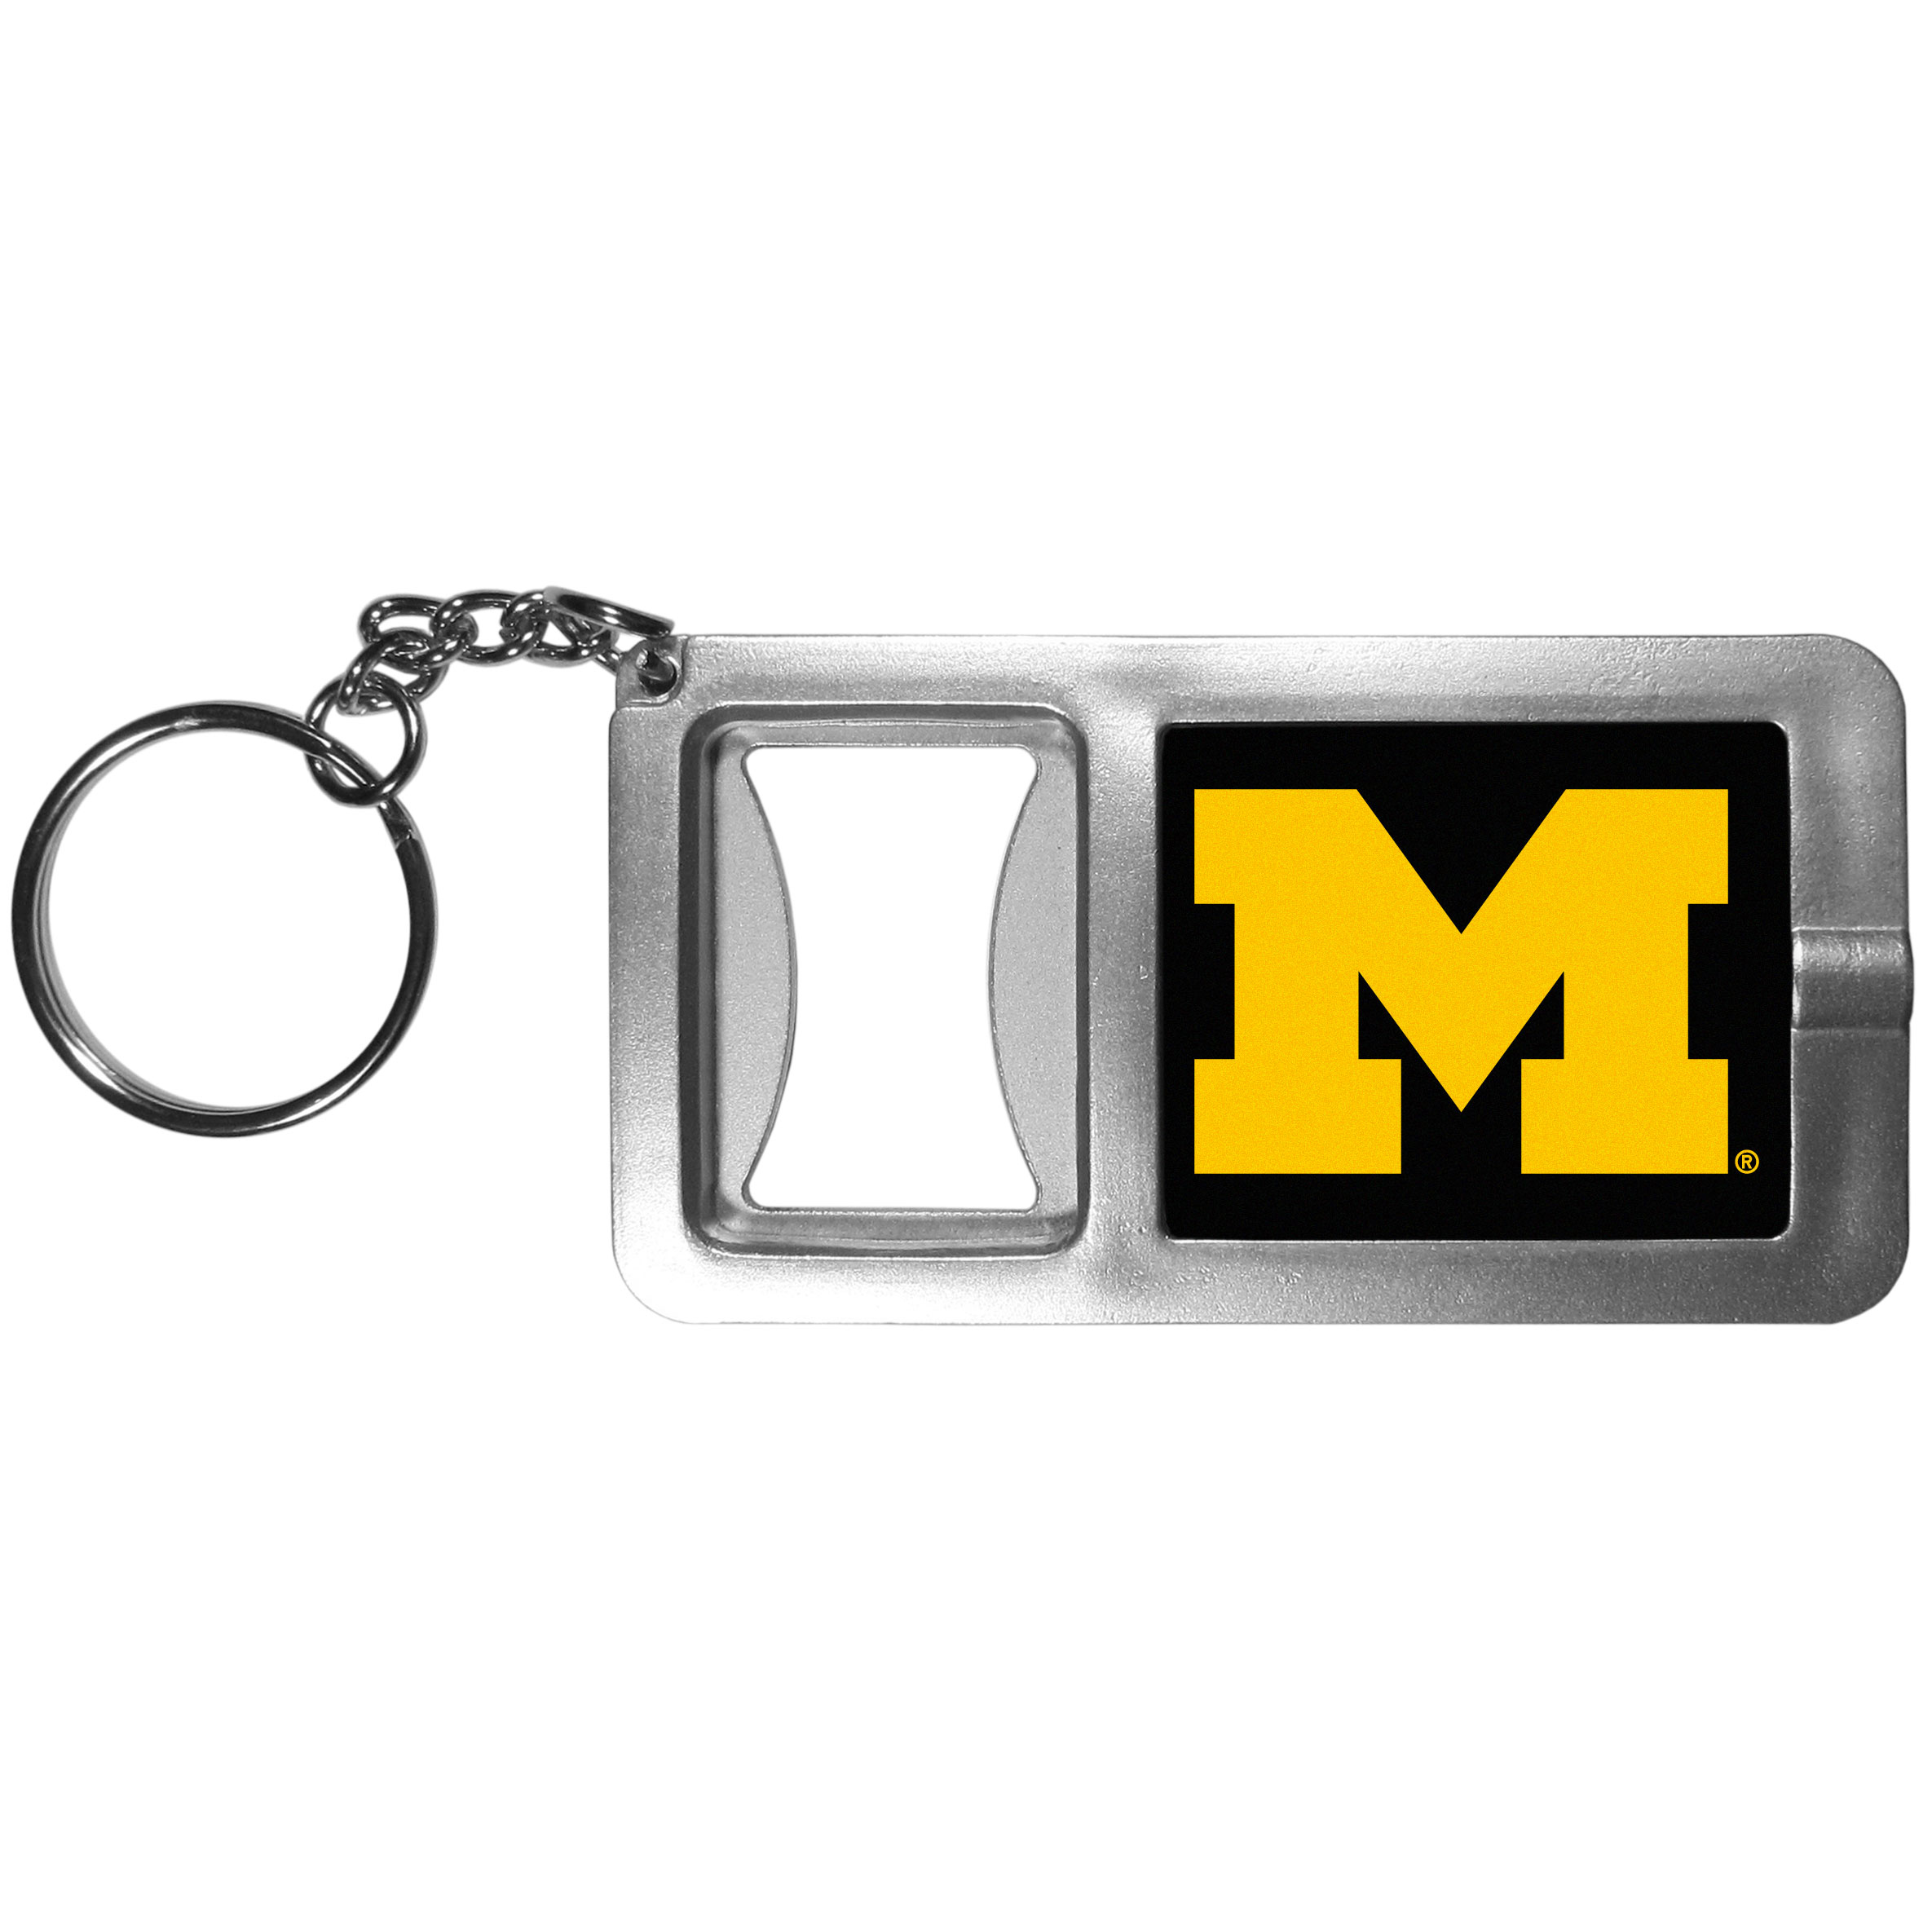 Michigan Wolverines Flashlight Key Chain with Bottle Opener - Never be without light with our Michigan Wolverines flashlight keychain that features a handy bottle opener feature. This versatile key chain is perfect for camping and travel and is a great way to show off your team pride!